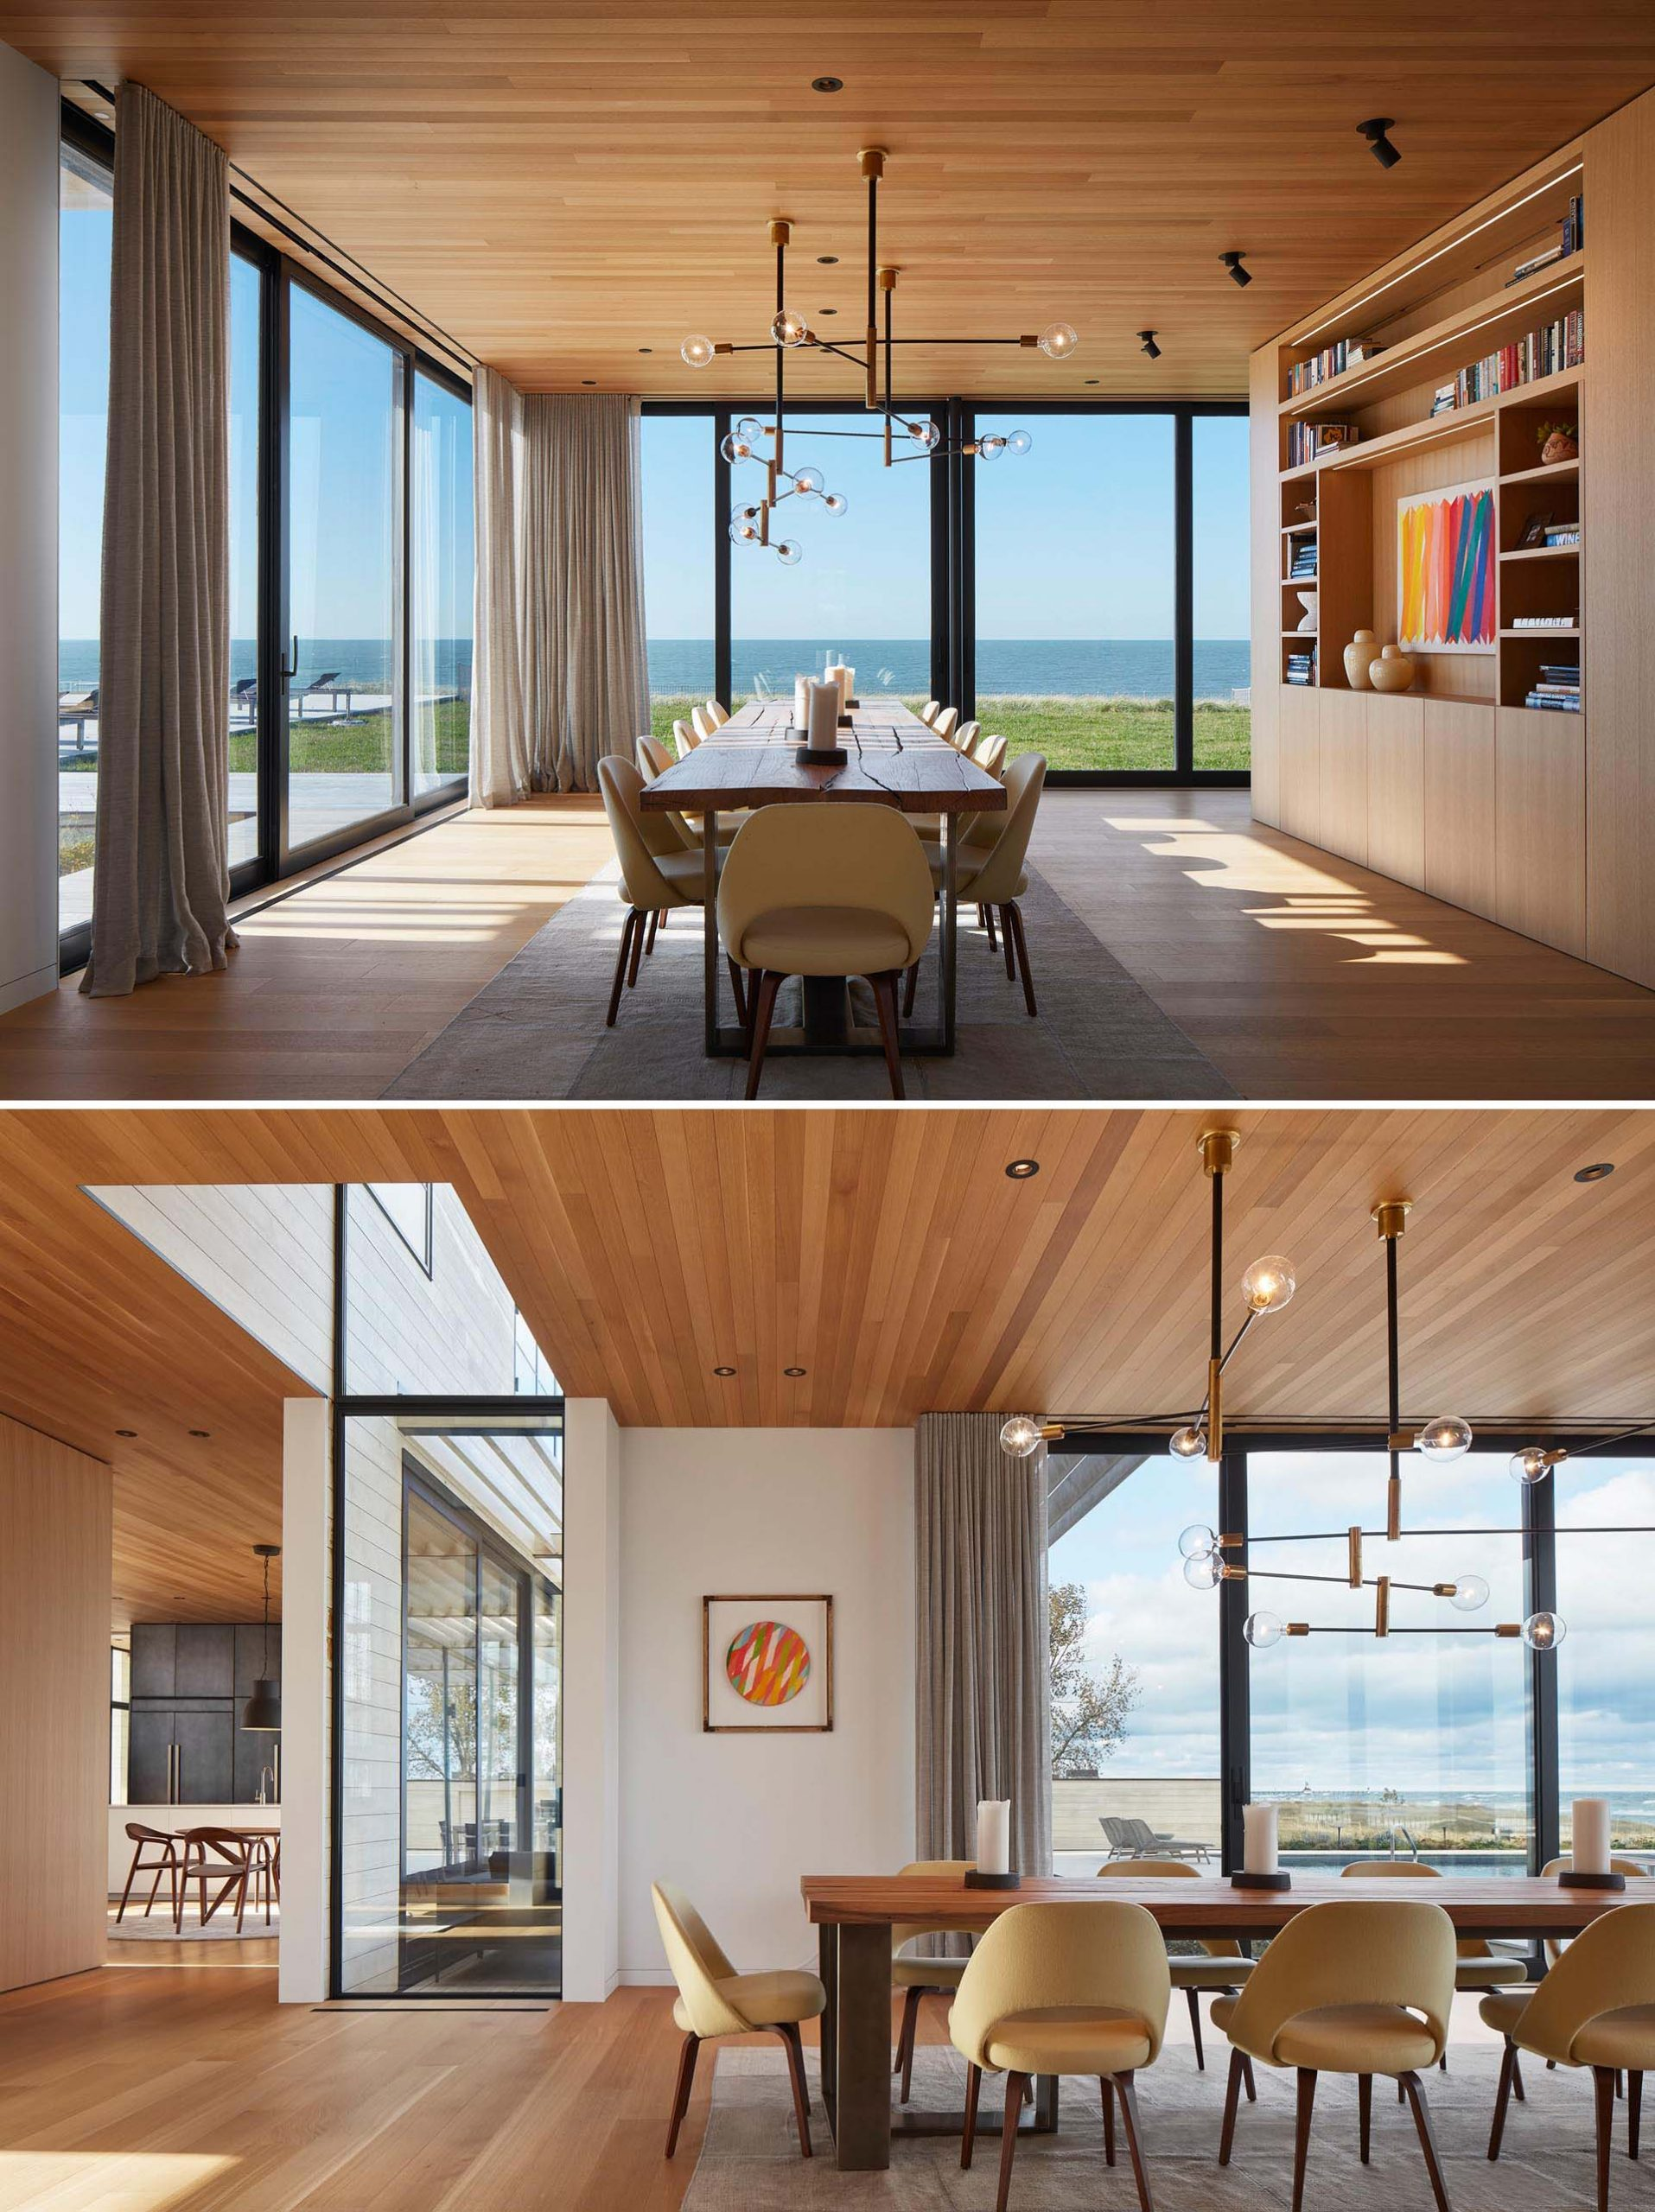 A modern living room with white oak floors and ceiling, and large windows that provide an unobstructed view of the lake.